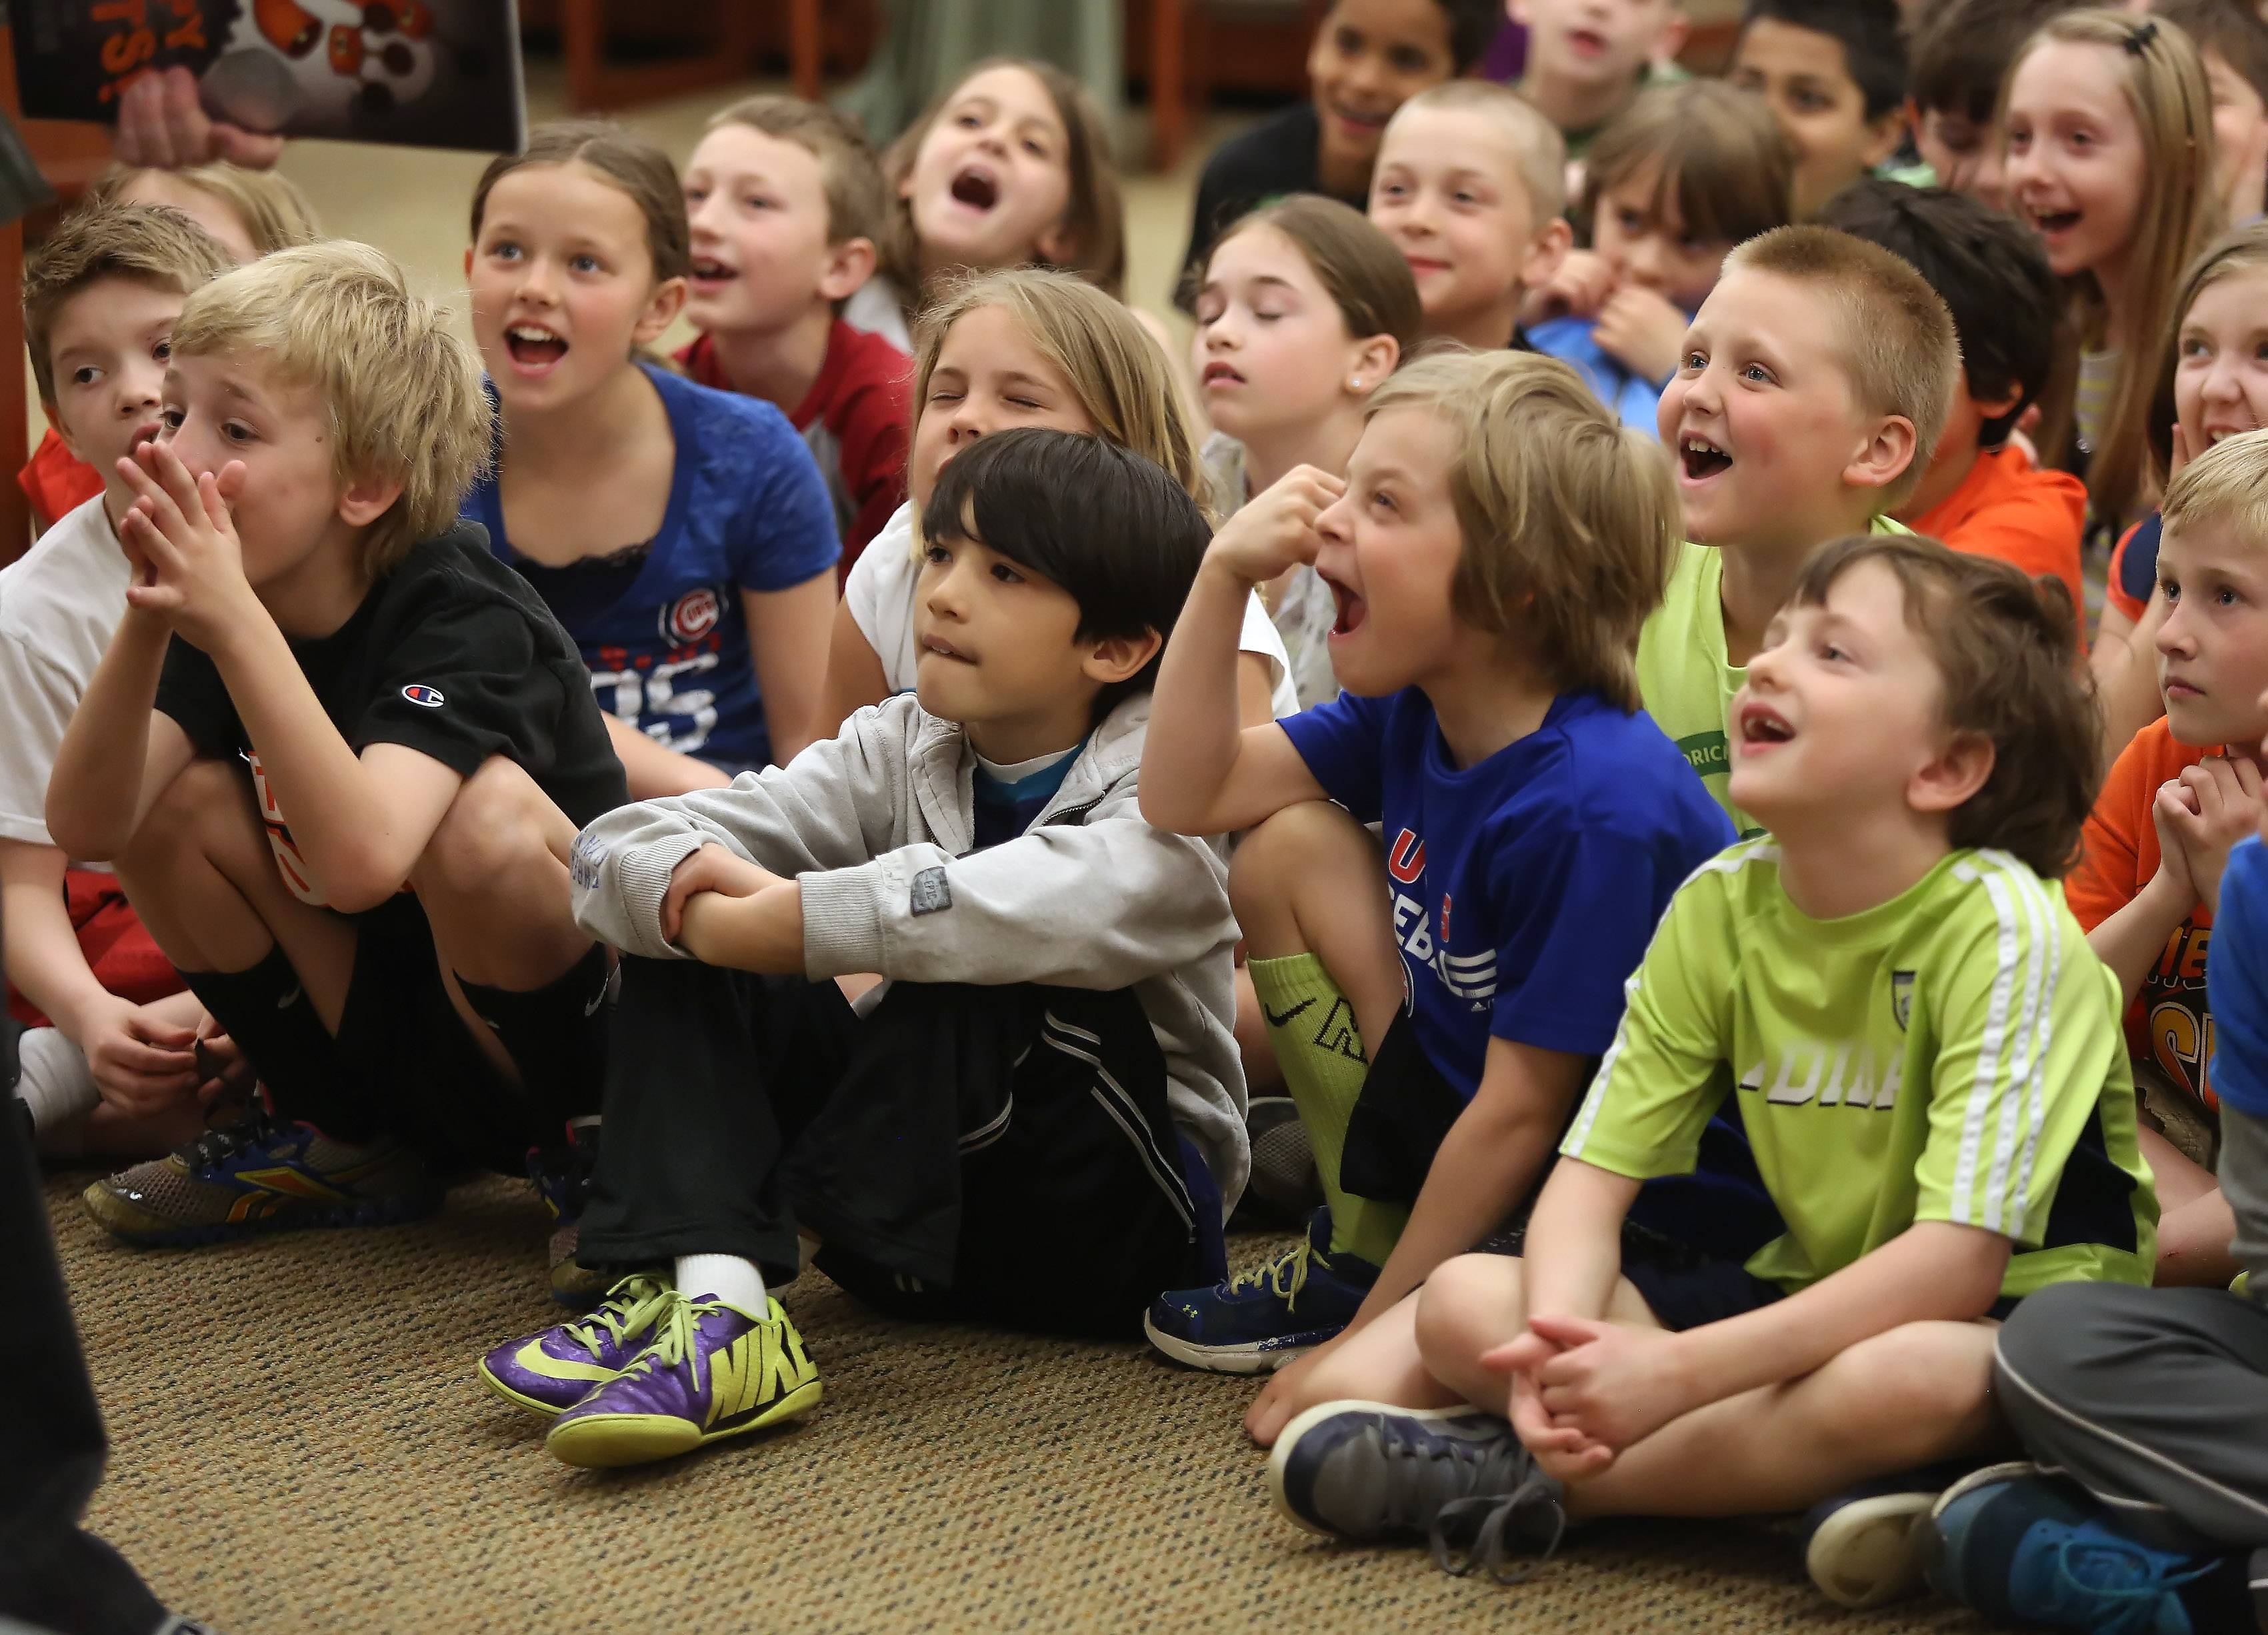 Students laugh at children's author Aaron Reynolds as he entertained them Wednesday at Butterfield Elementary School in Libertyville. Reynolds has been on The New York Times best-seller list and won the Caldecott Medal award.